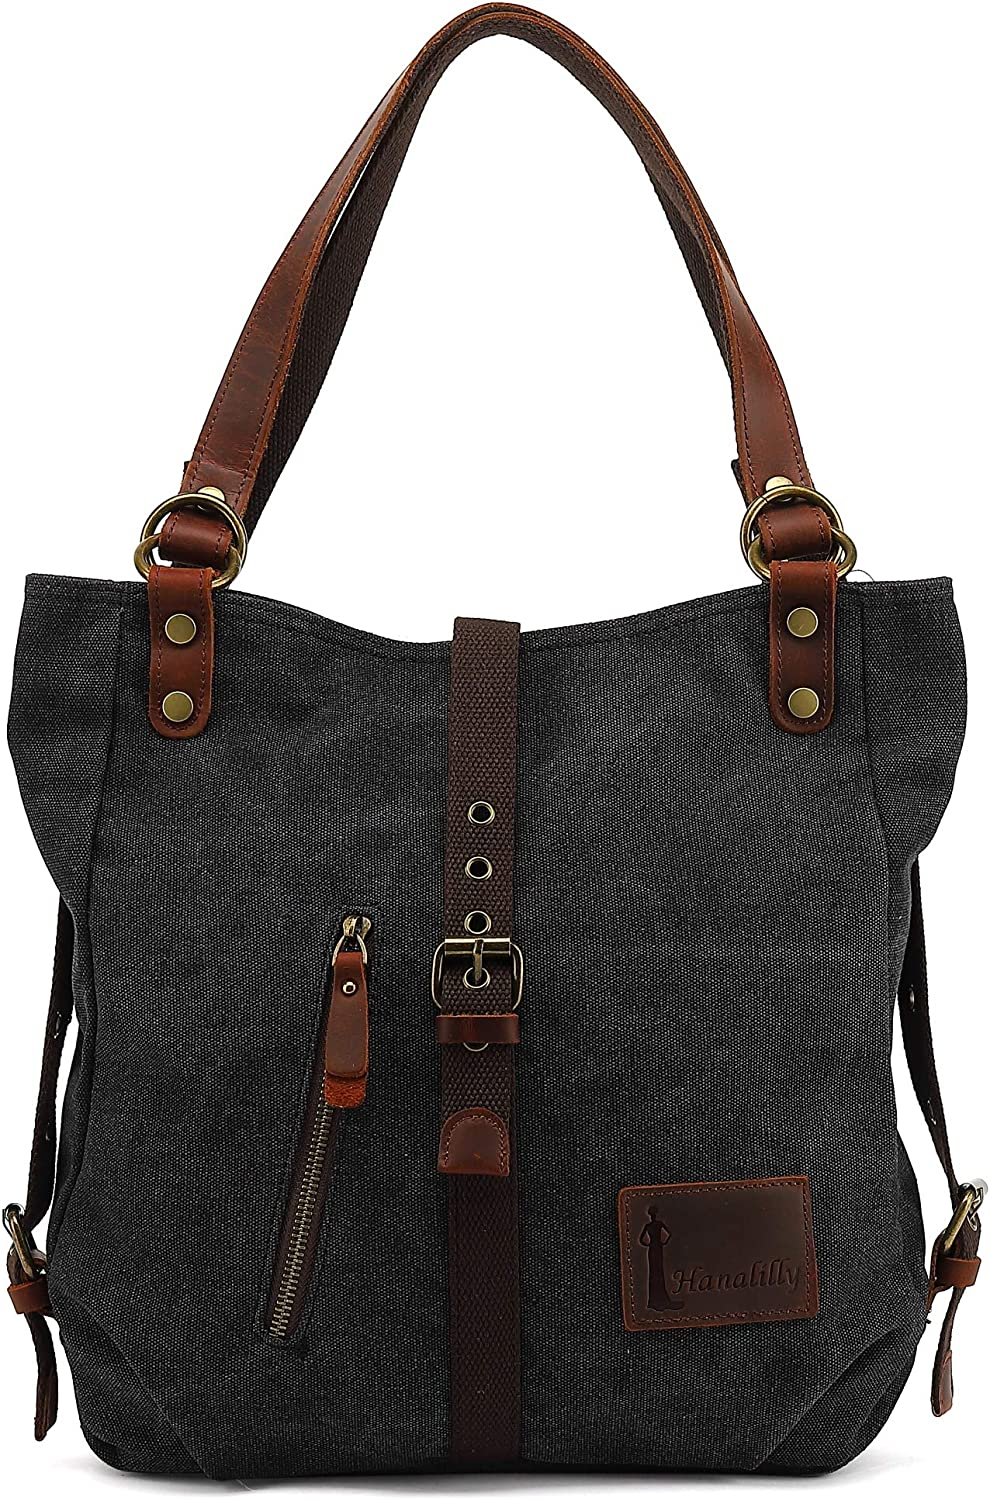 Hanalilly Convertible Backpack Purse Genuine Leather Canvas, Handbag Shoulder Bag Tote Casual & Fashion School Bag for Women